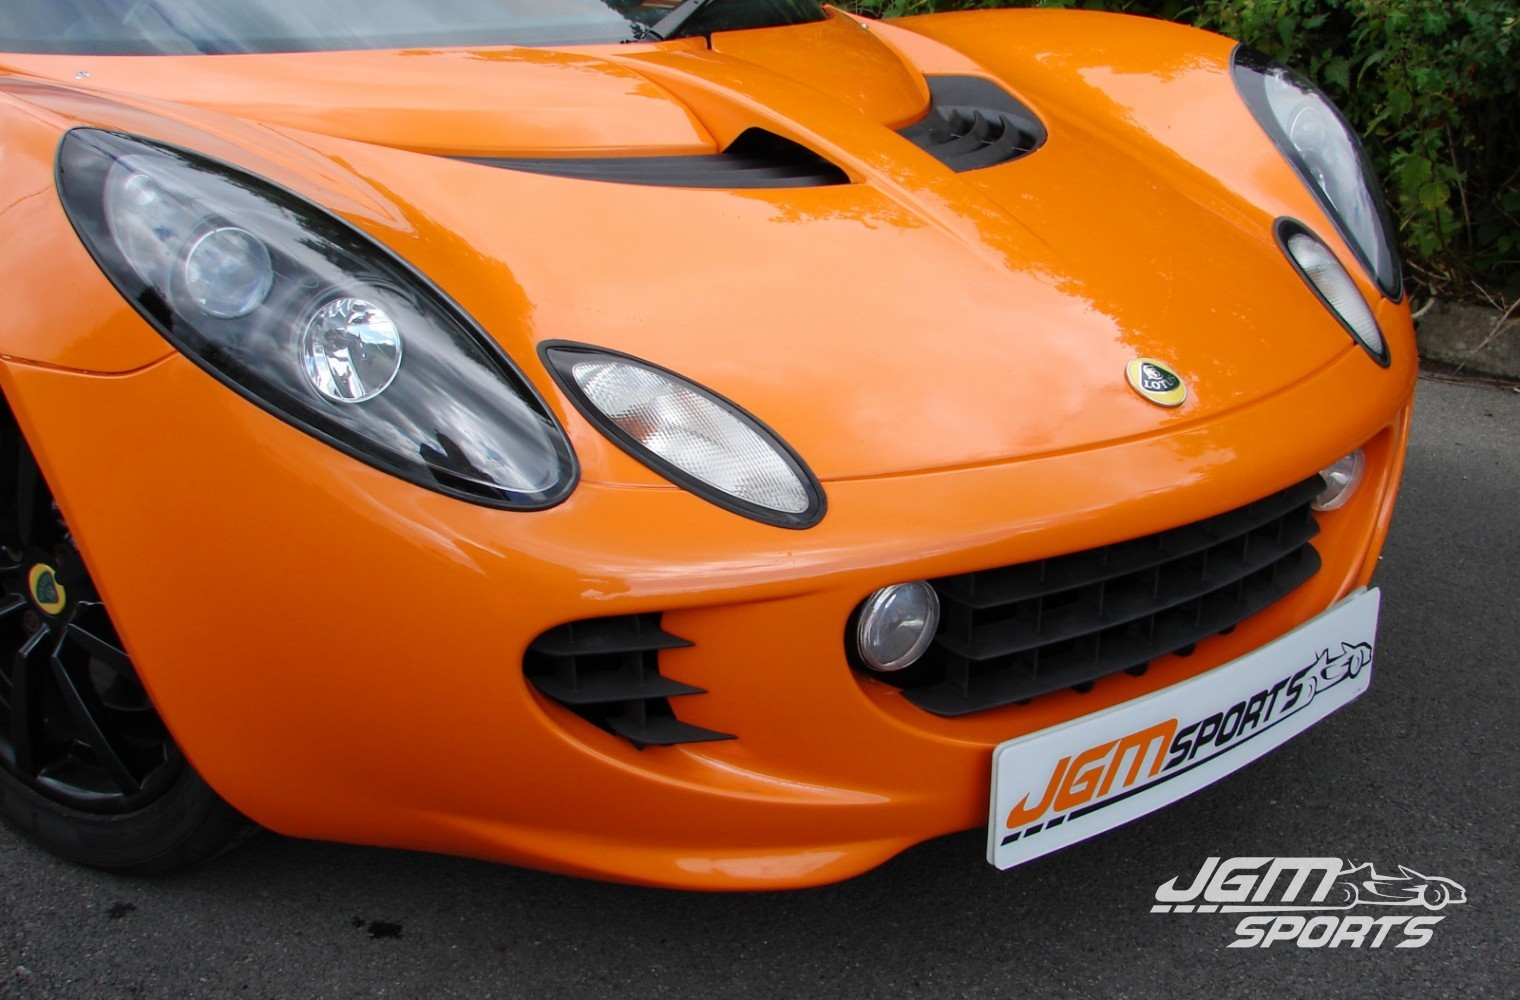 http://www.jgmsports.co.uk/wp-content/uploads/2007-S2-LOTUS-ELISE-R-1-OWNER-FROM-NEW-CHROME-ORANGE-FRONT-NOSE-1520x1000.jpg